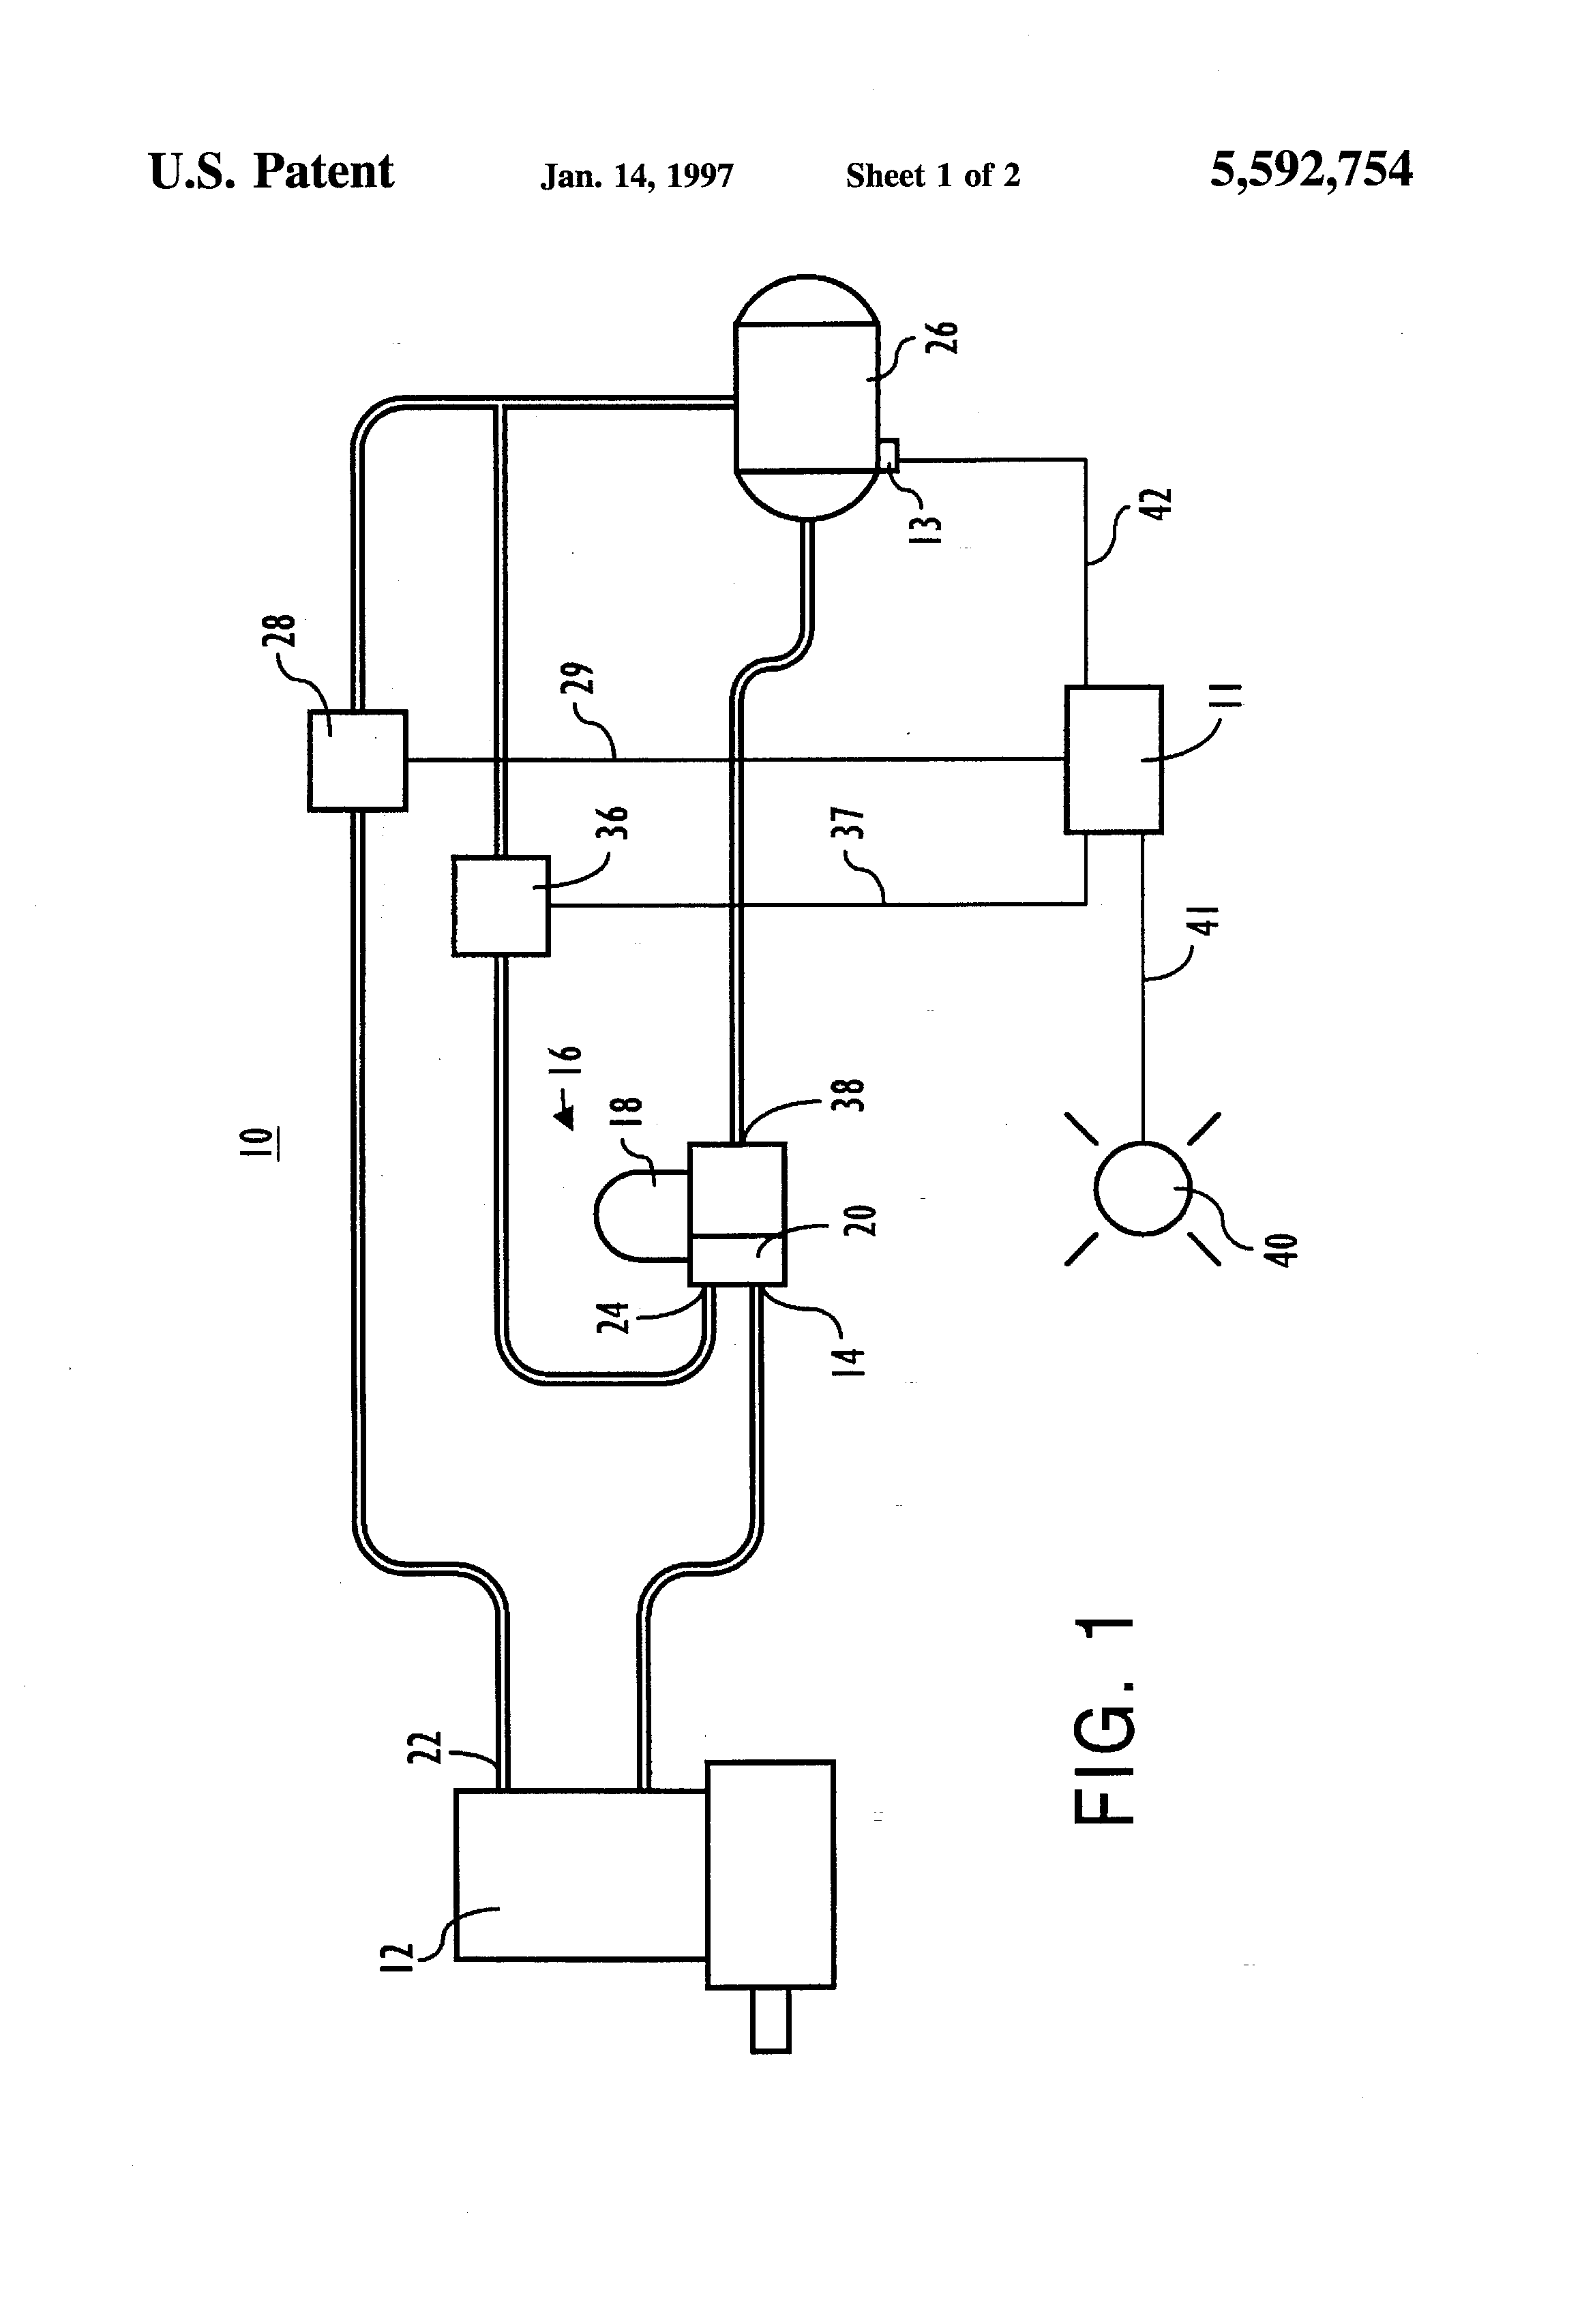 Patent Us5592754 - Electronic Control Of Compressor Unloader And Air Dryer Purge